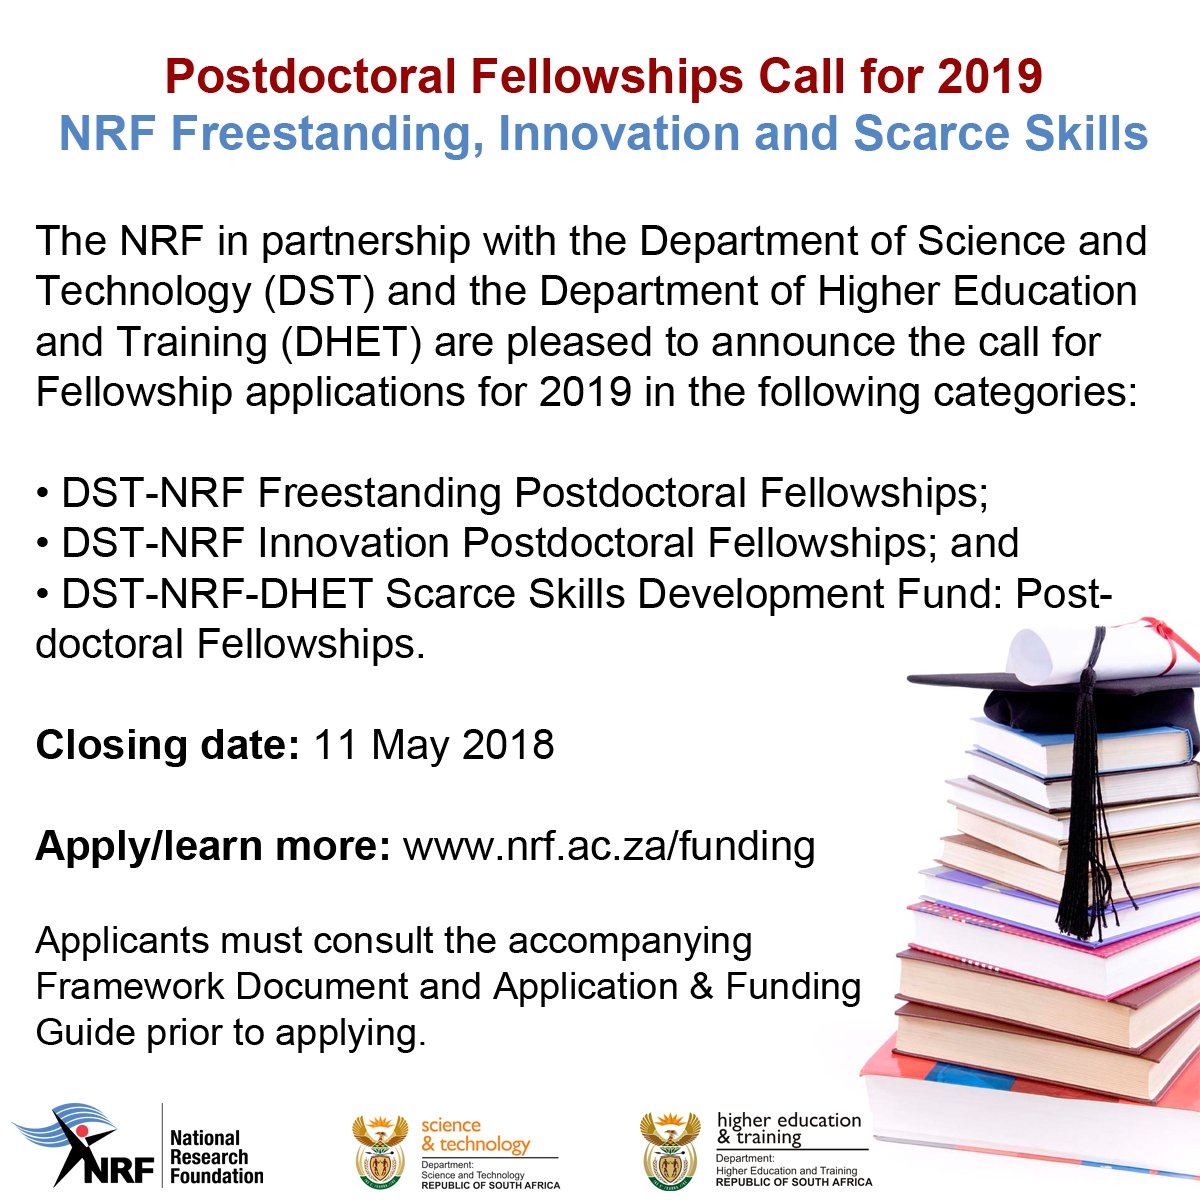 NRF South Africa on Twitter: